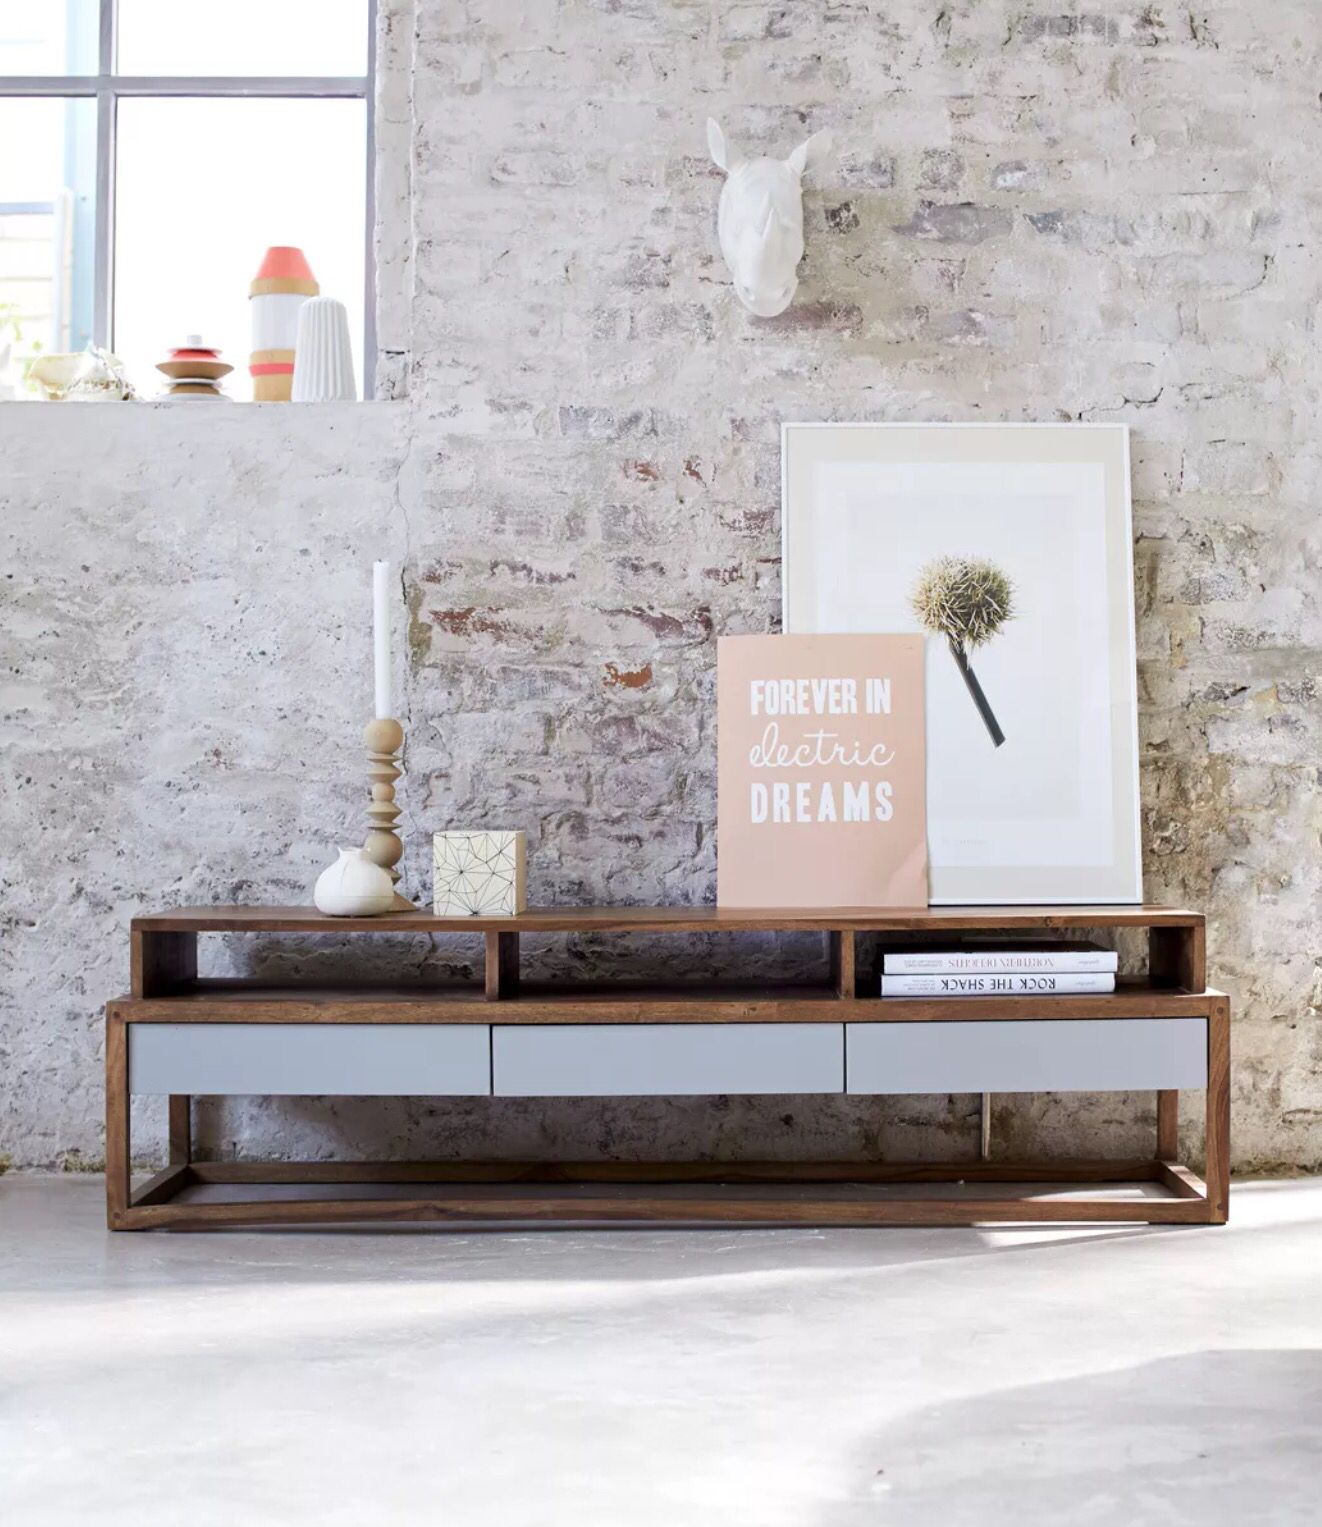 Table Tele Mural Palissandre - Media Good Diy Potential F U R N I C O N S O L E Pinterest [mjhdah]http://media.massivum.fr/image/Meuble-TV-COUNTRY-en-palissandre-massif-laque-miel-10017395a.jpg